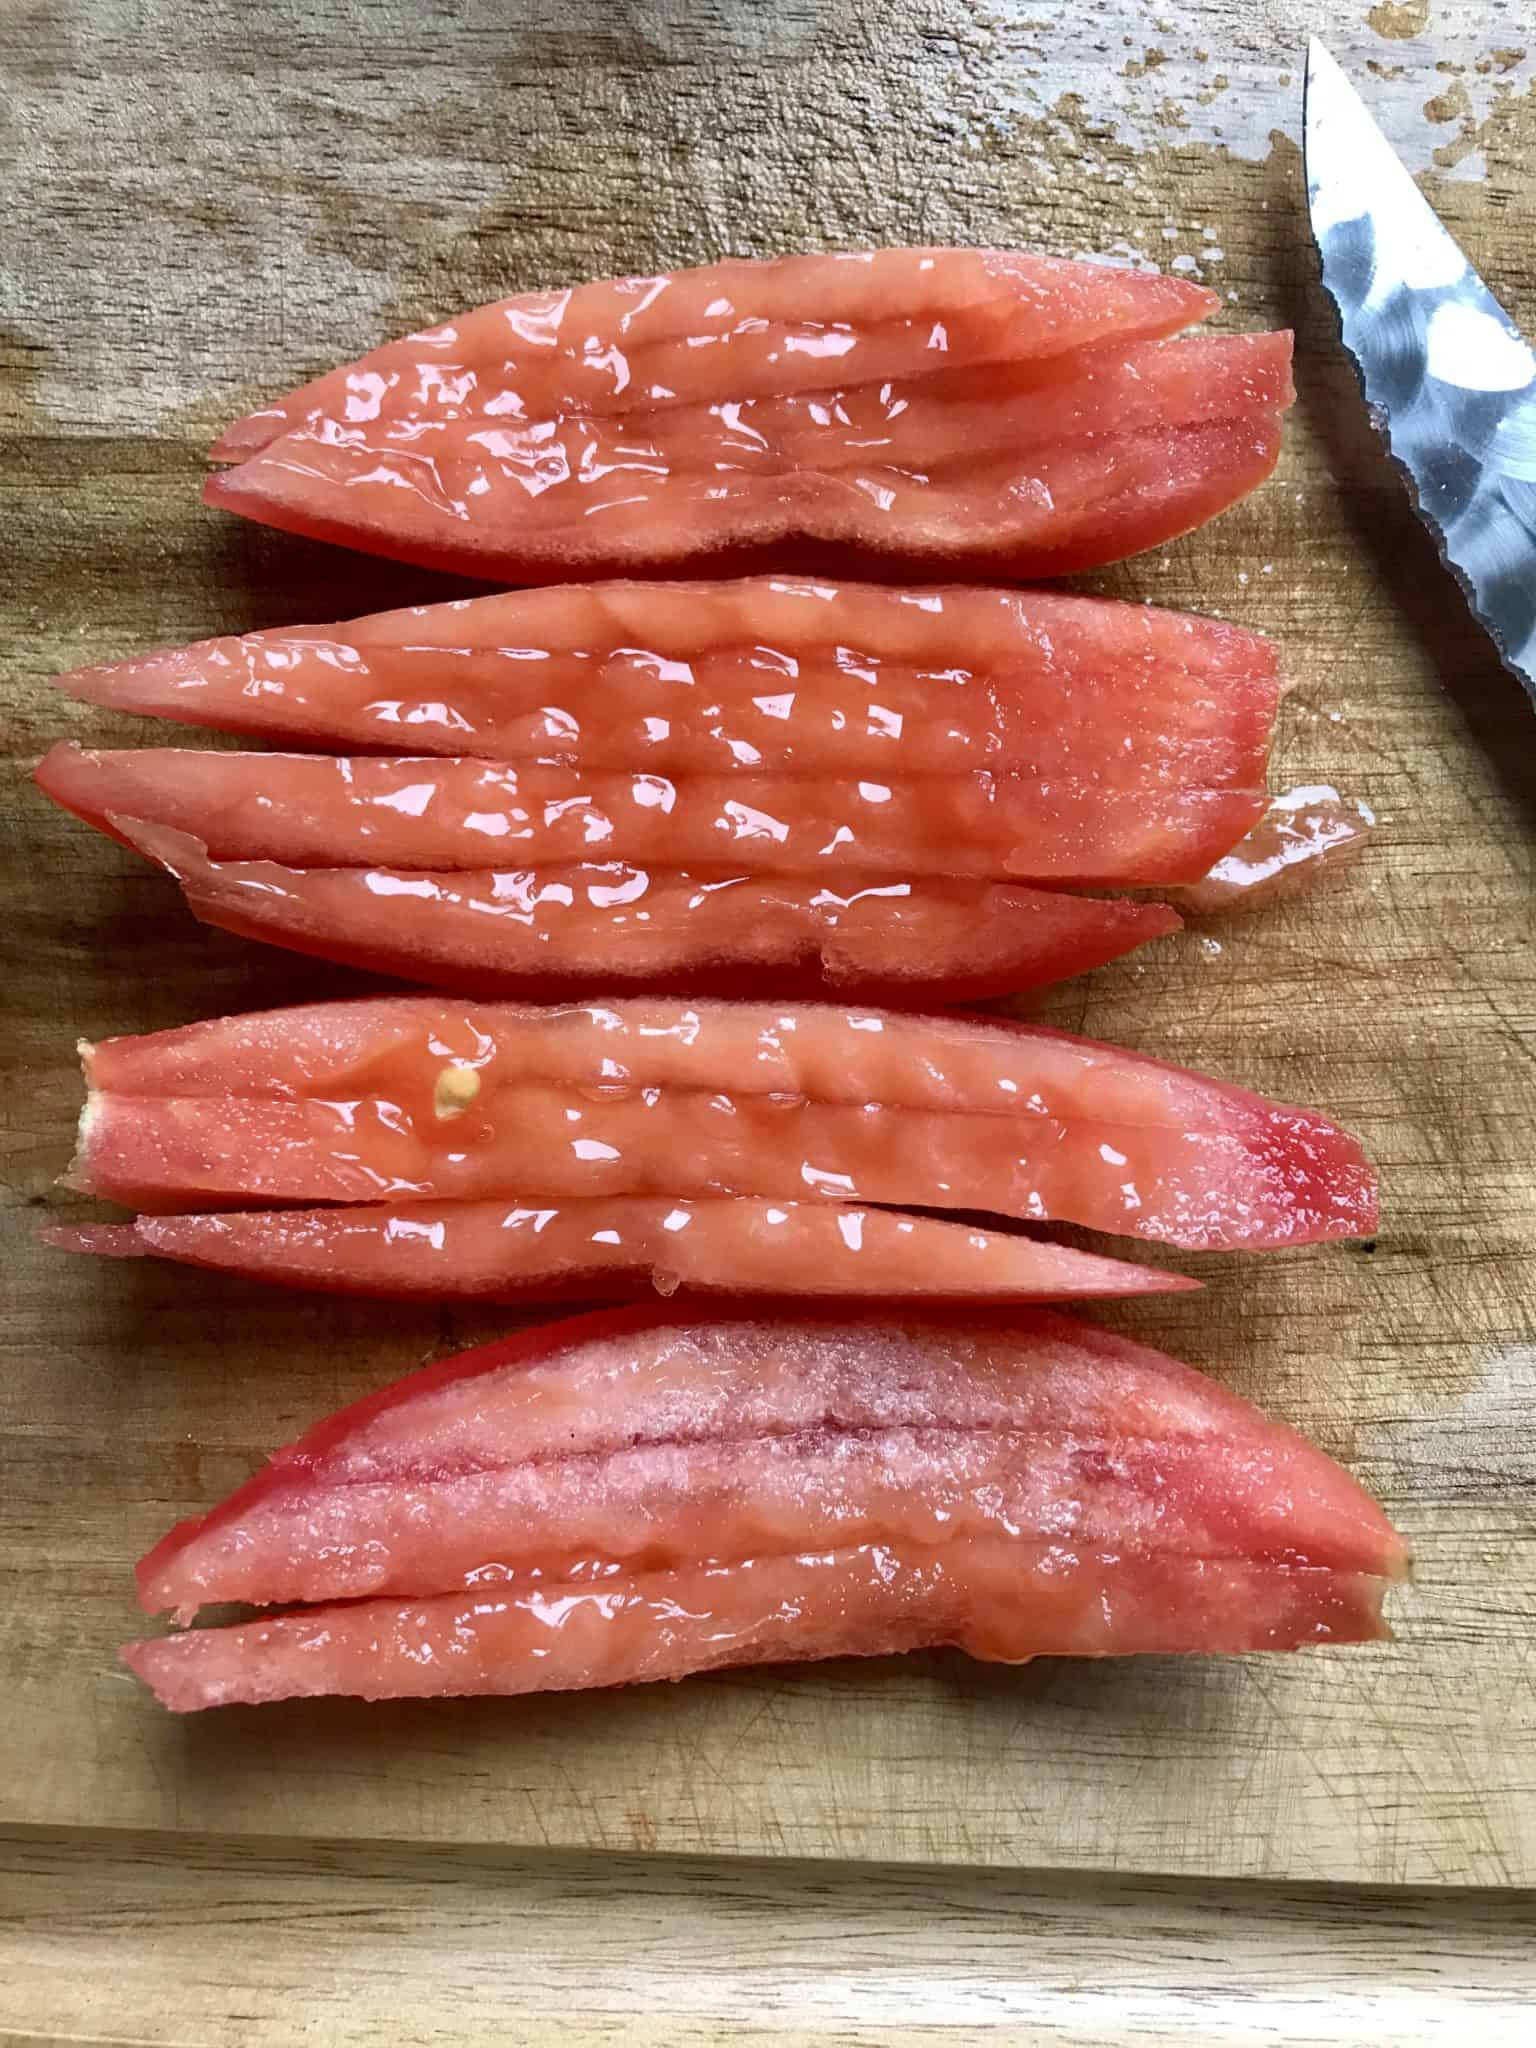 Tomato slices on wooden cutting board ready to be diced